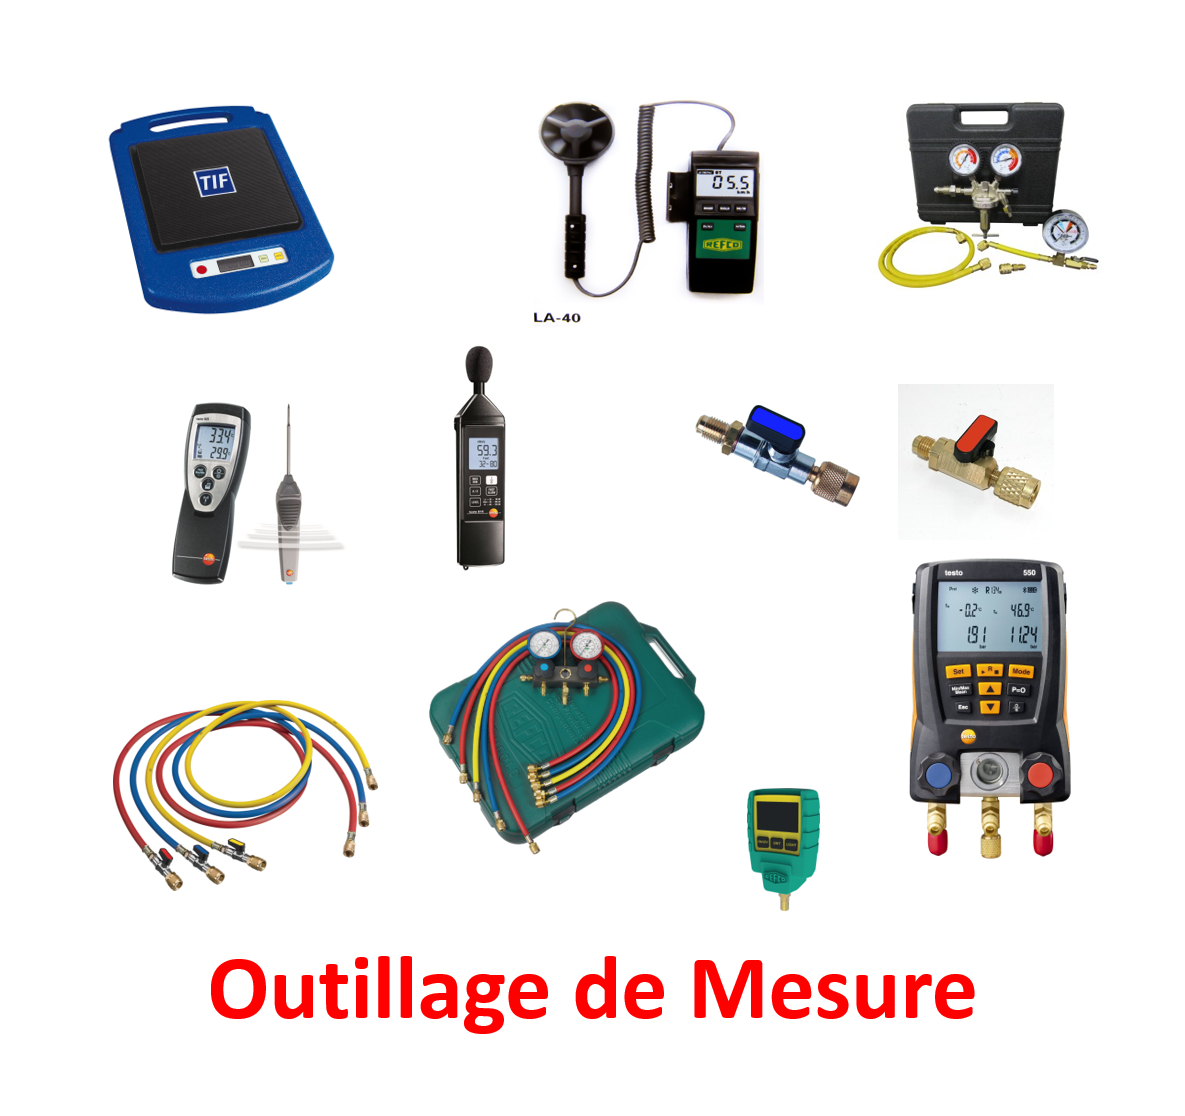 Outillage de mesure